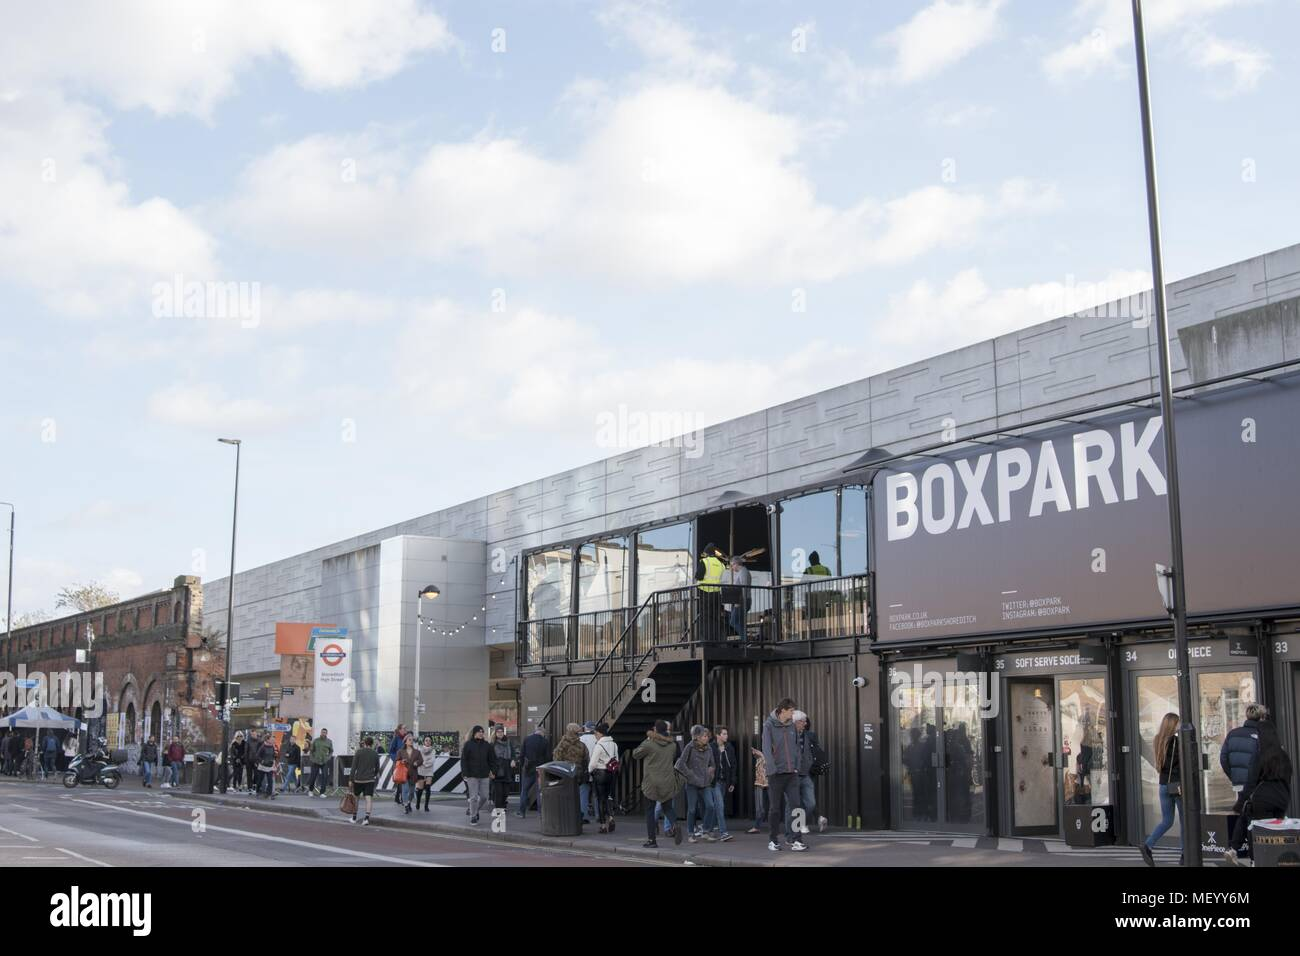 Shoppers walk through Boxpark, a pop-up shopping mall for fashion items constructed from recycling intermodal shipping containers, London, United Kingdom, October 29, 2017. () - Stock Image